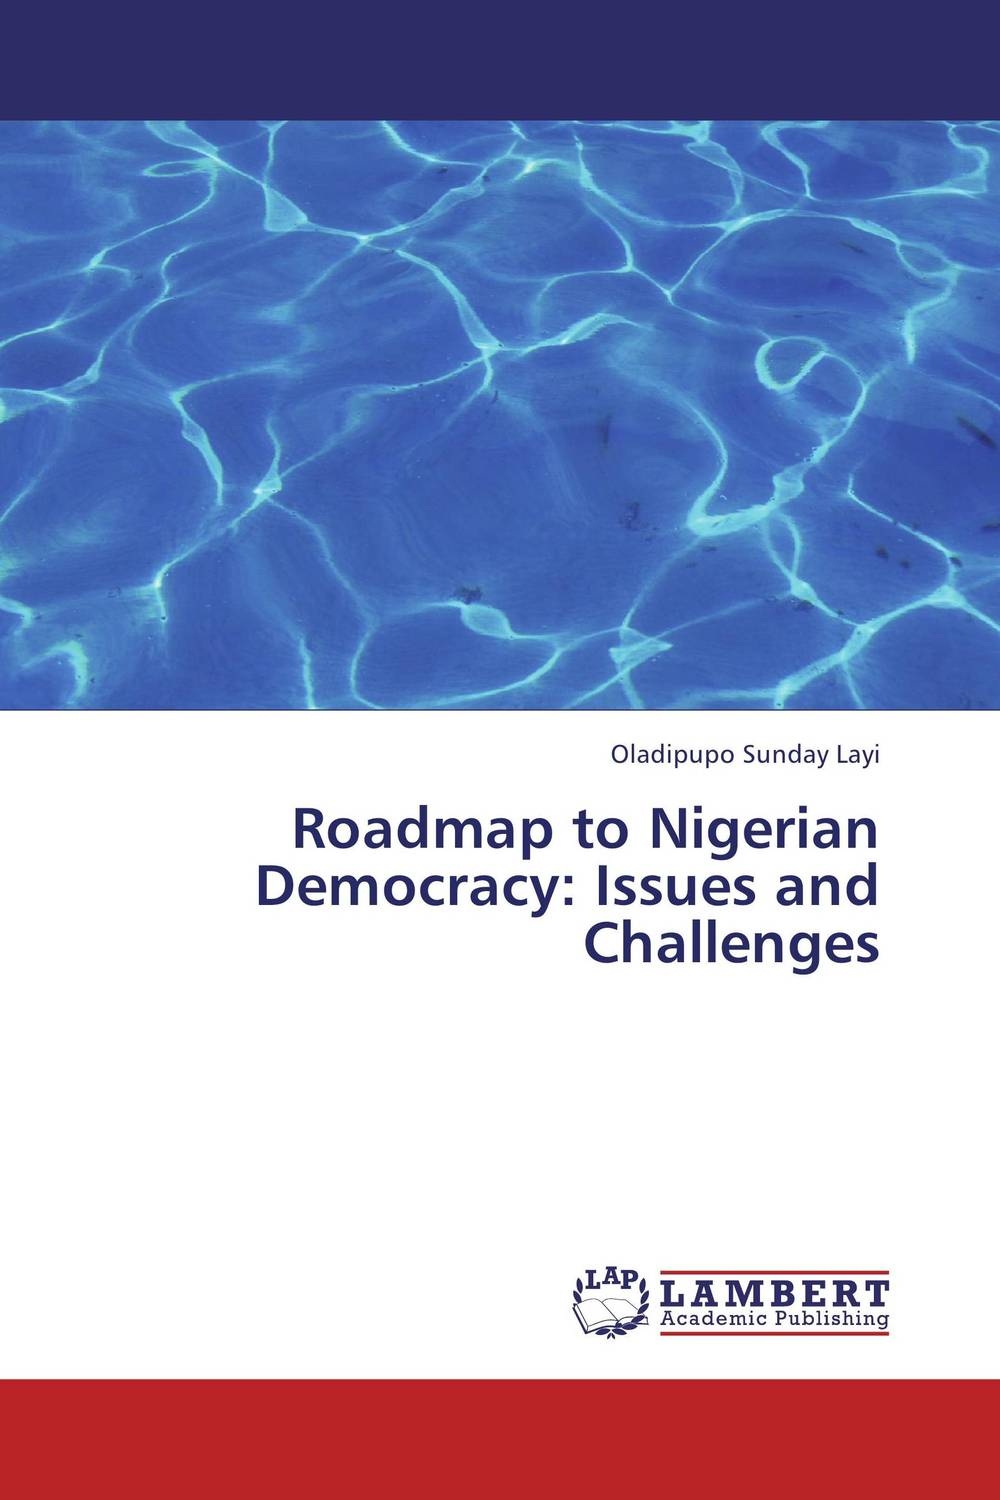 Roadmap to Nigerian Democracy: Issues and Challenges roadmap to nigerian democracy issues and challenges